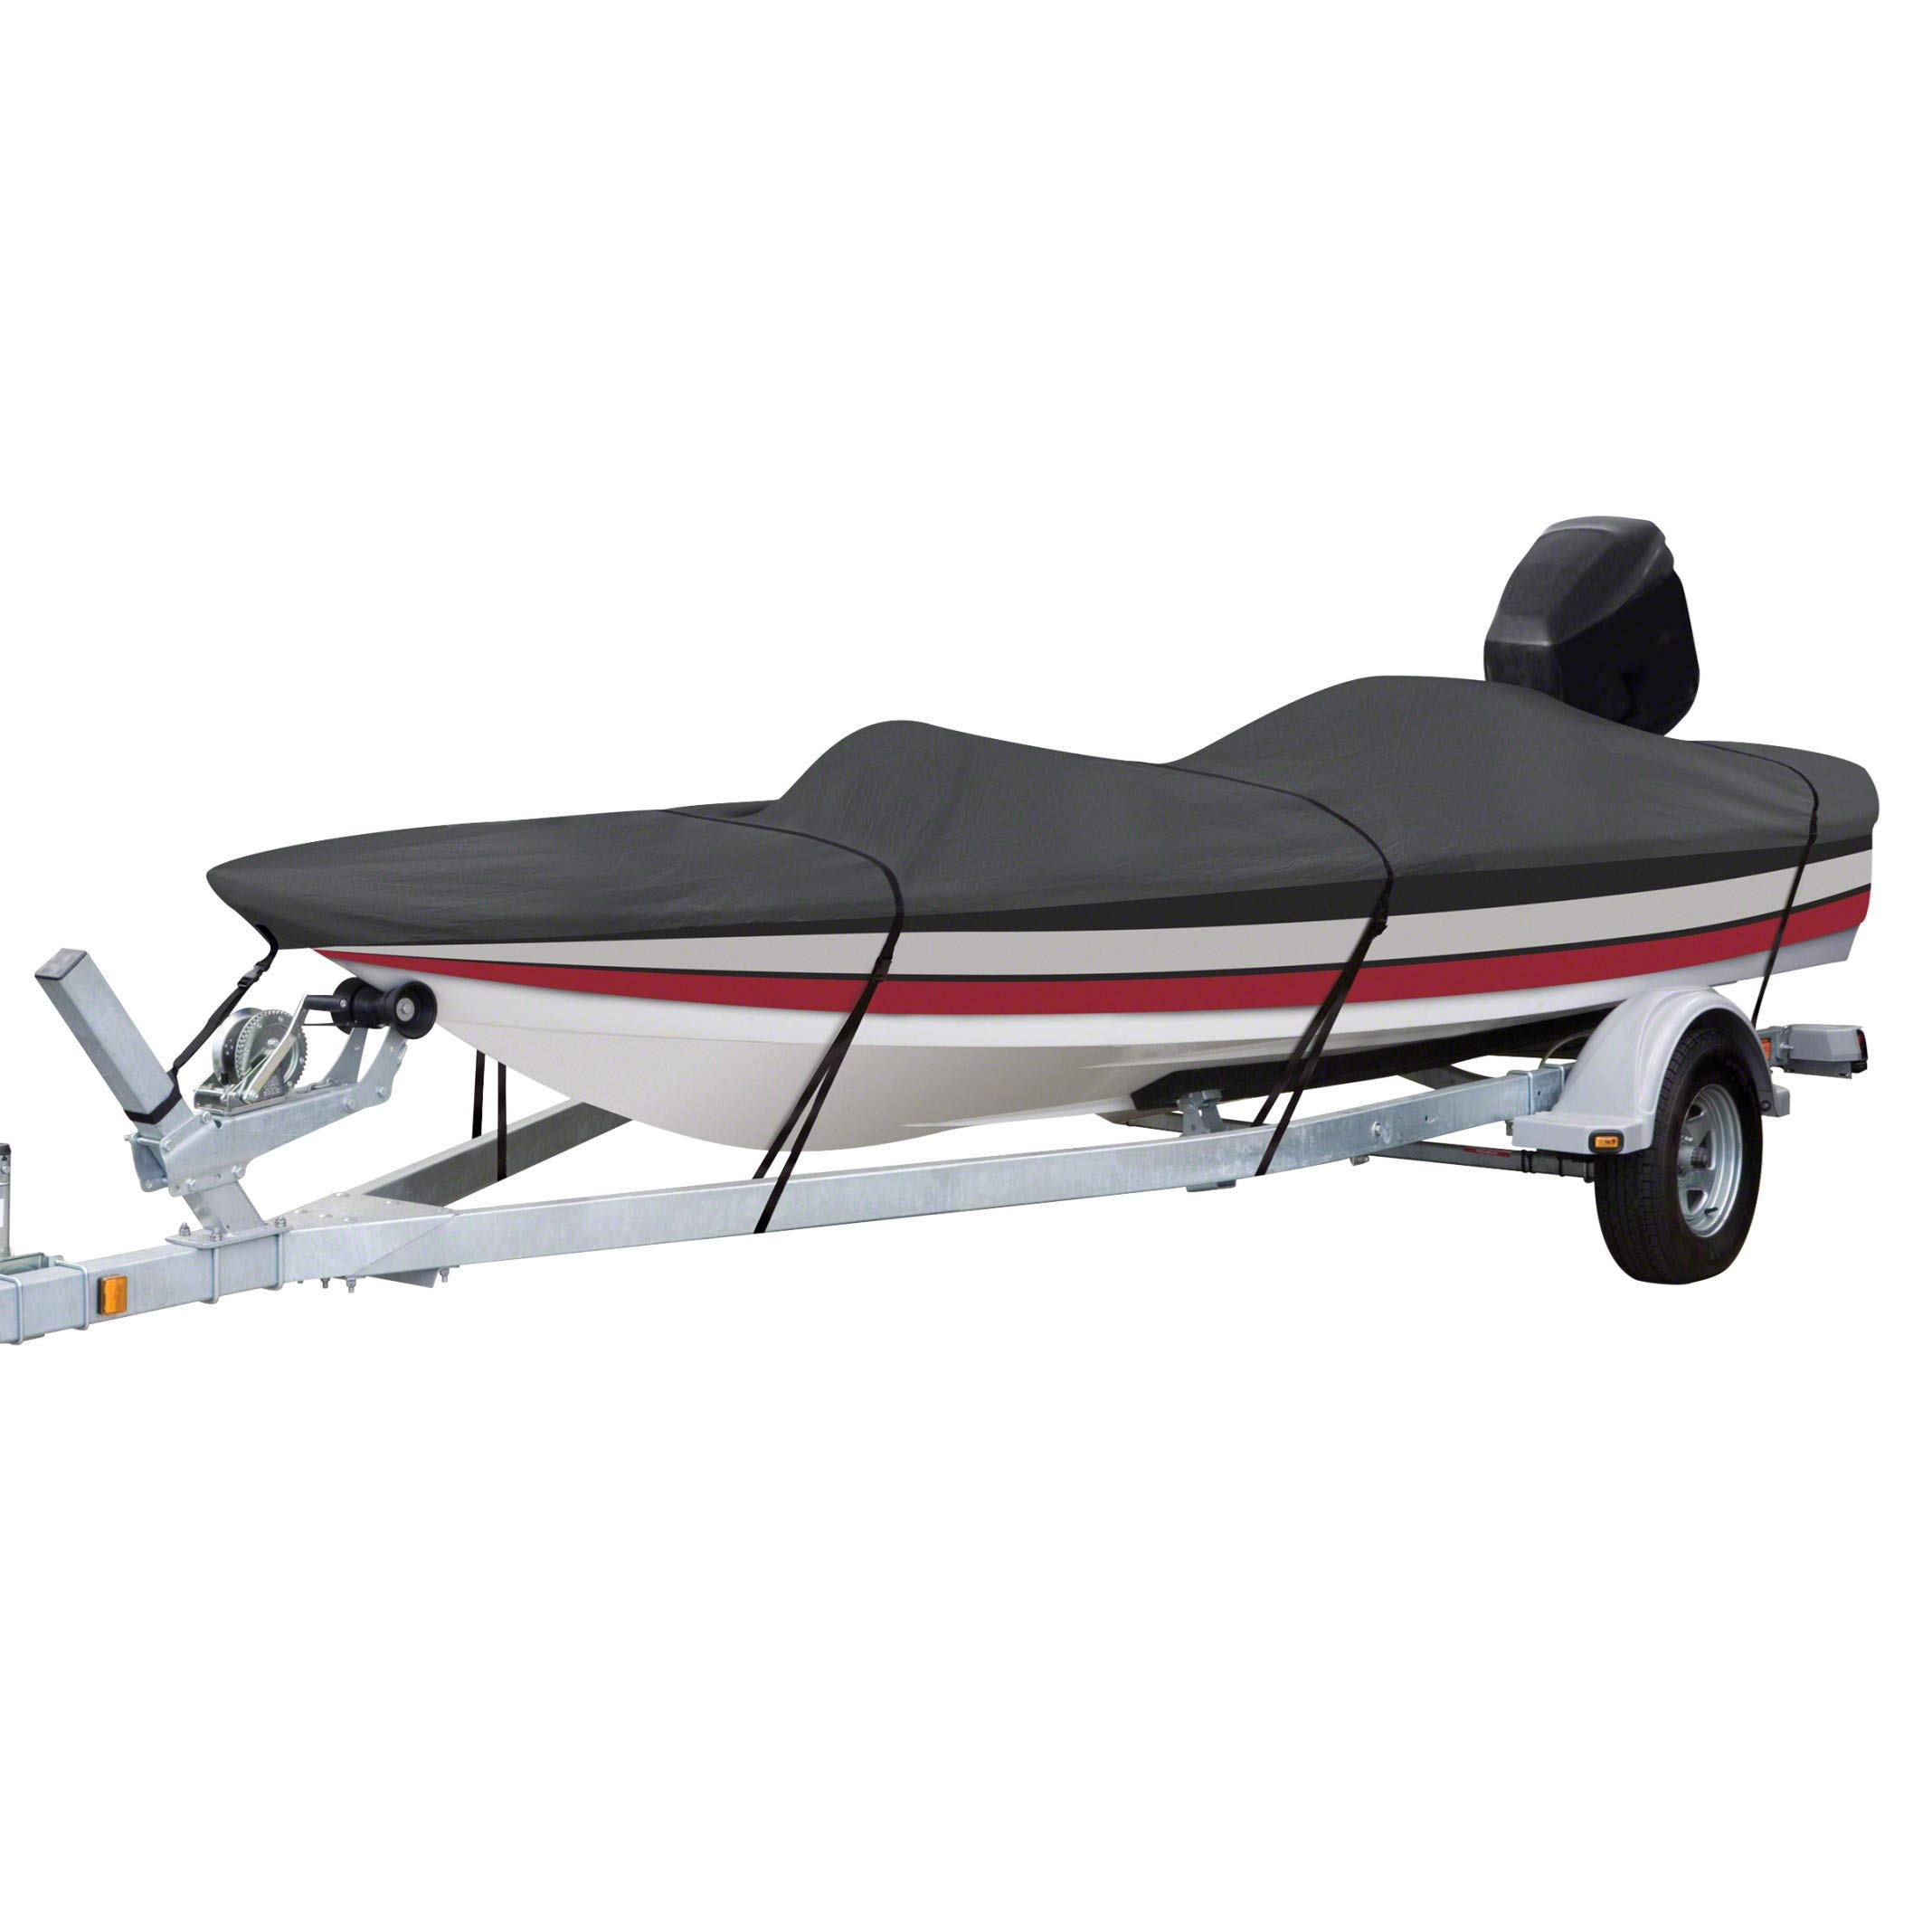 Classic Accessories StormPro Heavy-Duty Boat Cover With Support Pole For Bass Boats, Fits 14' - 16' L x 90'' W by Classic Accessories